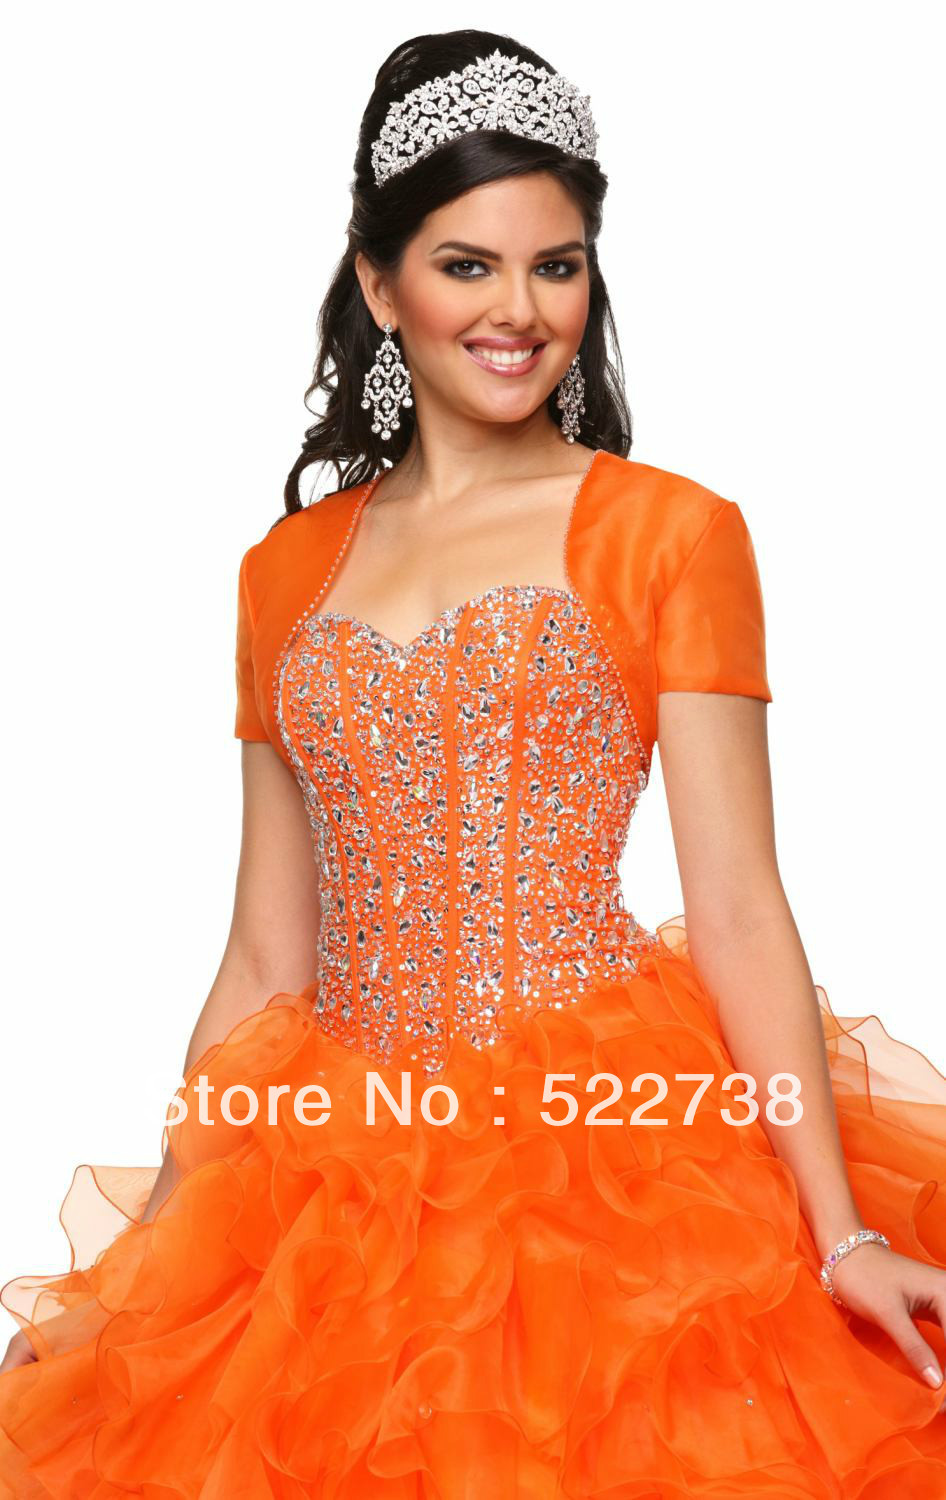 Sweet 16 crystal cheap orange quinceanera dresses 2014 long dress 15 years masquerade ball gowns vestidos de quinceanera-in Quinceanera Dresses from Apparel & Accessories on Aliexpress.com